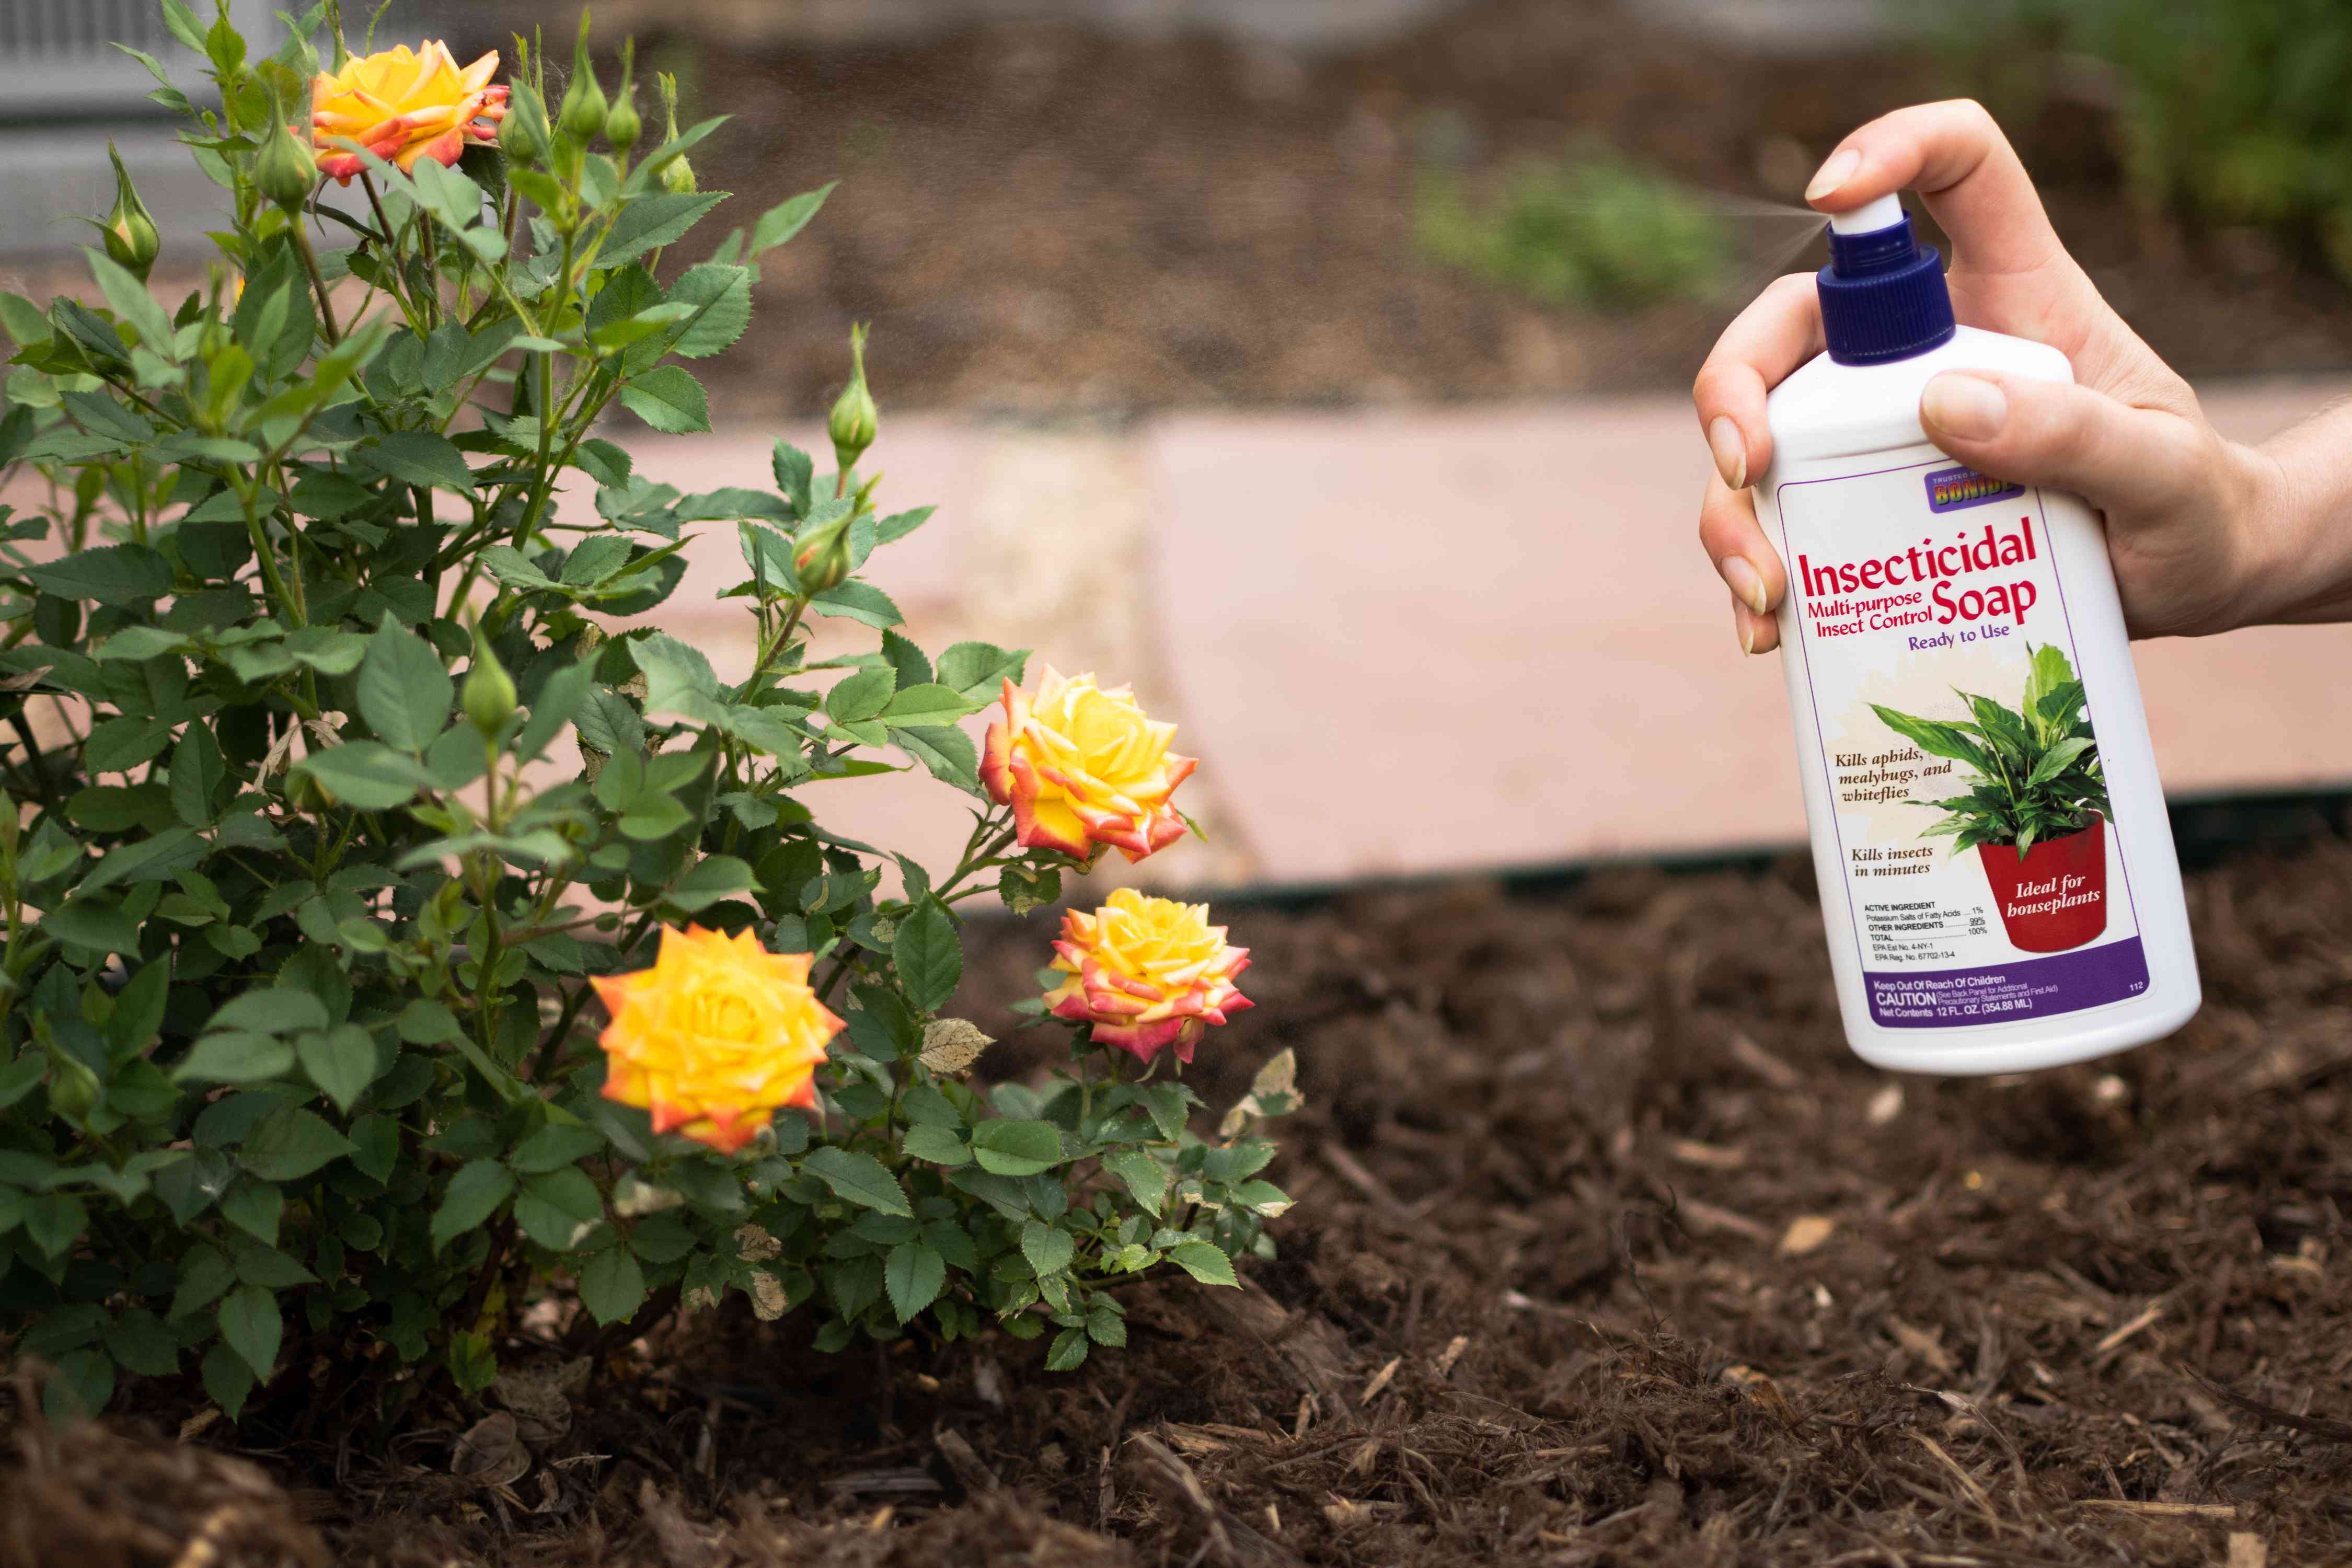 Insecticidal soap sprayed on yellow rose bush to prevent pests